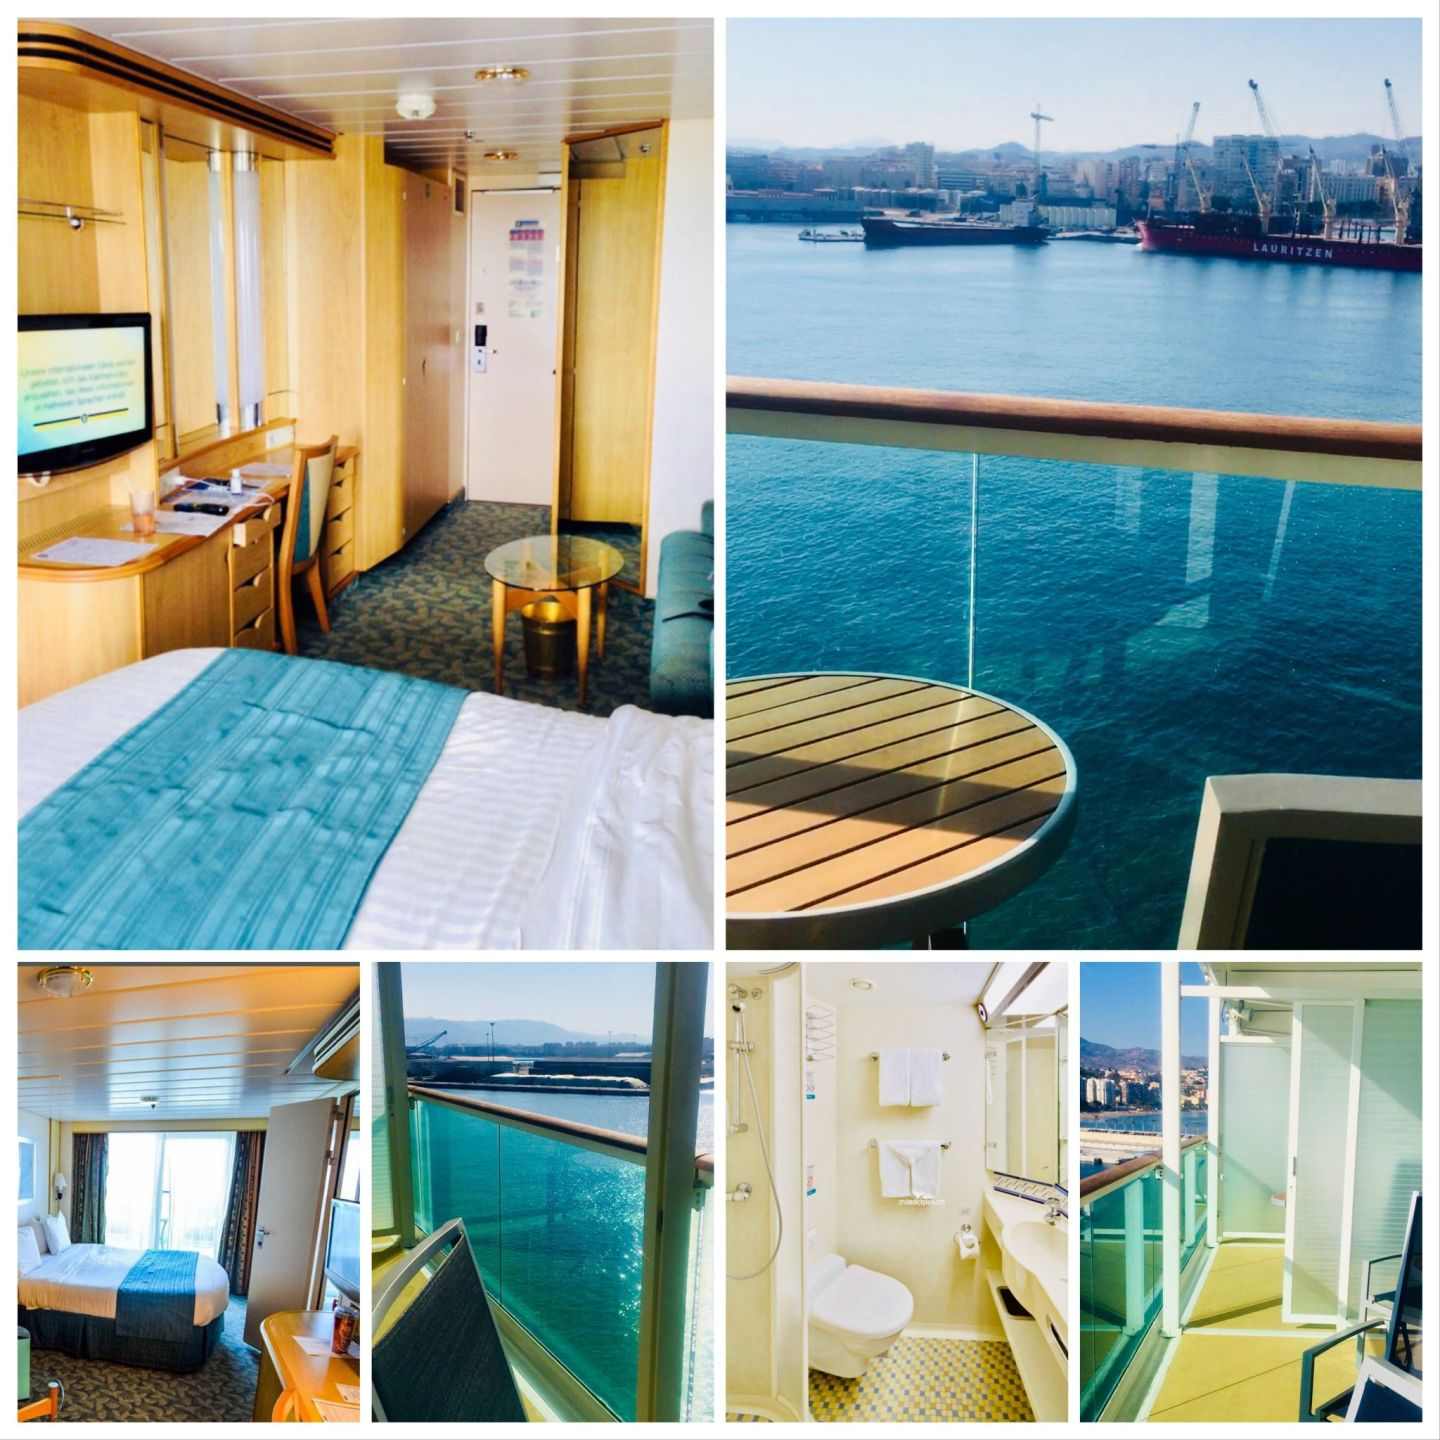 Royal Caribbean, The Independence Of The Seas review